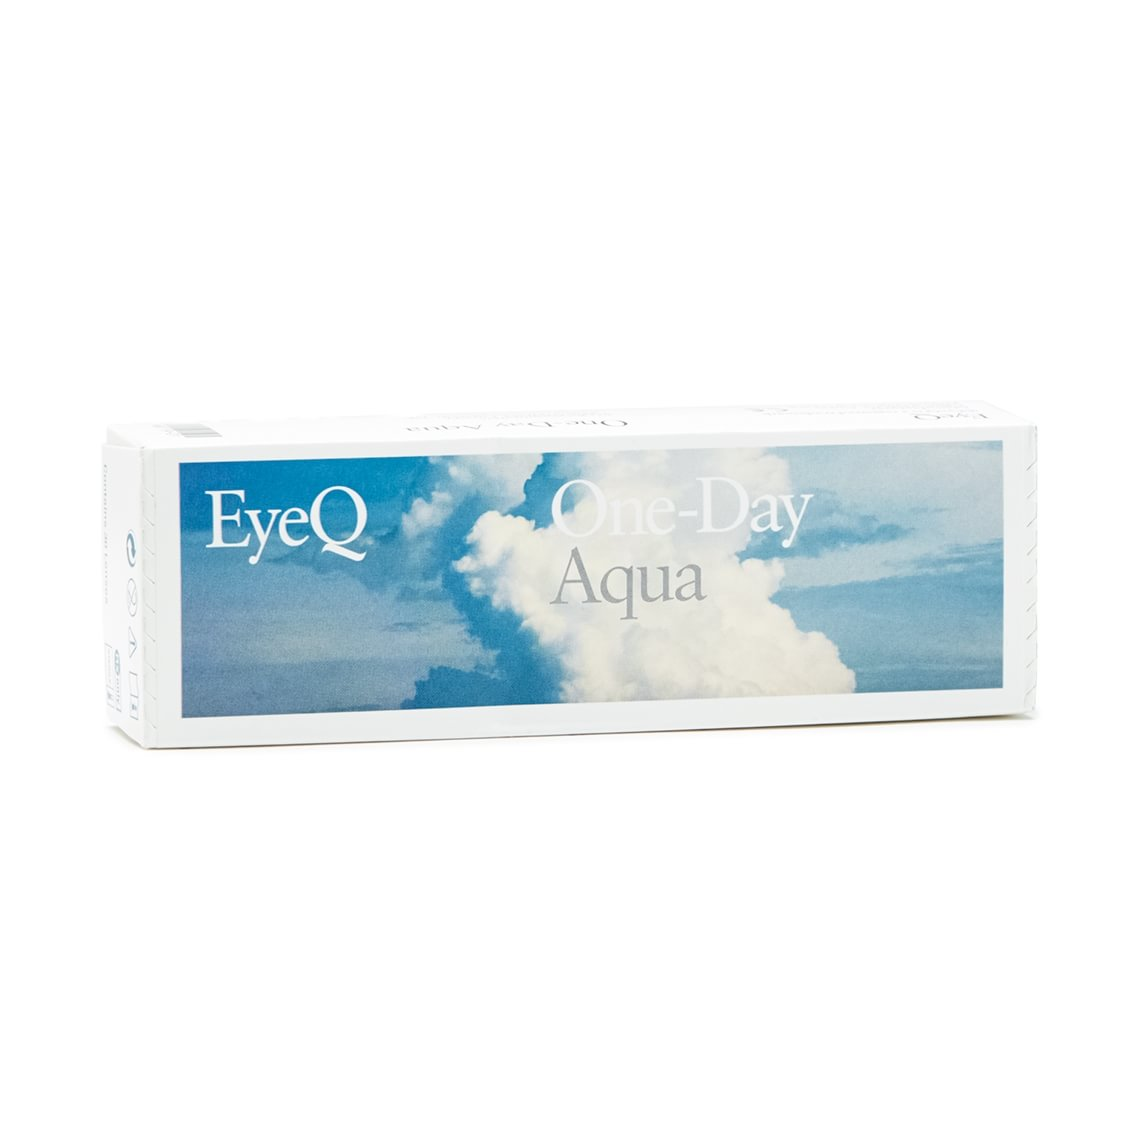 EyeQ One-Day Aqua 30 st/box